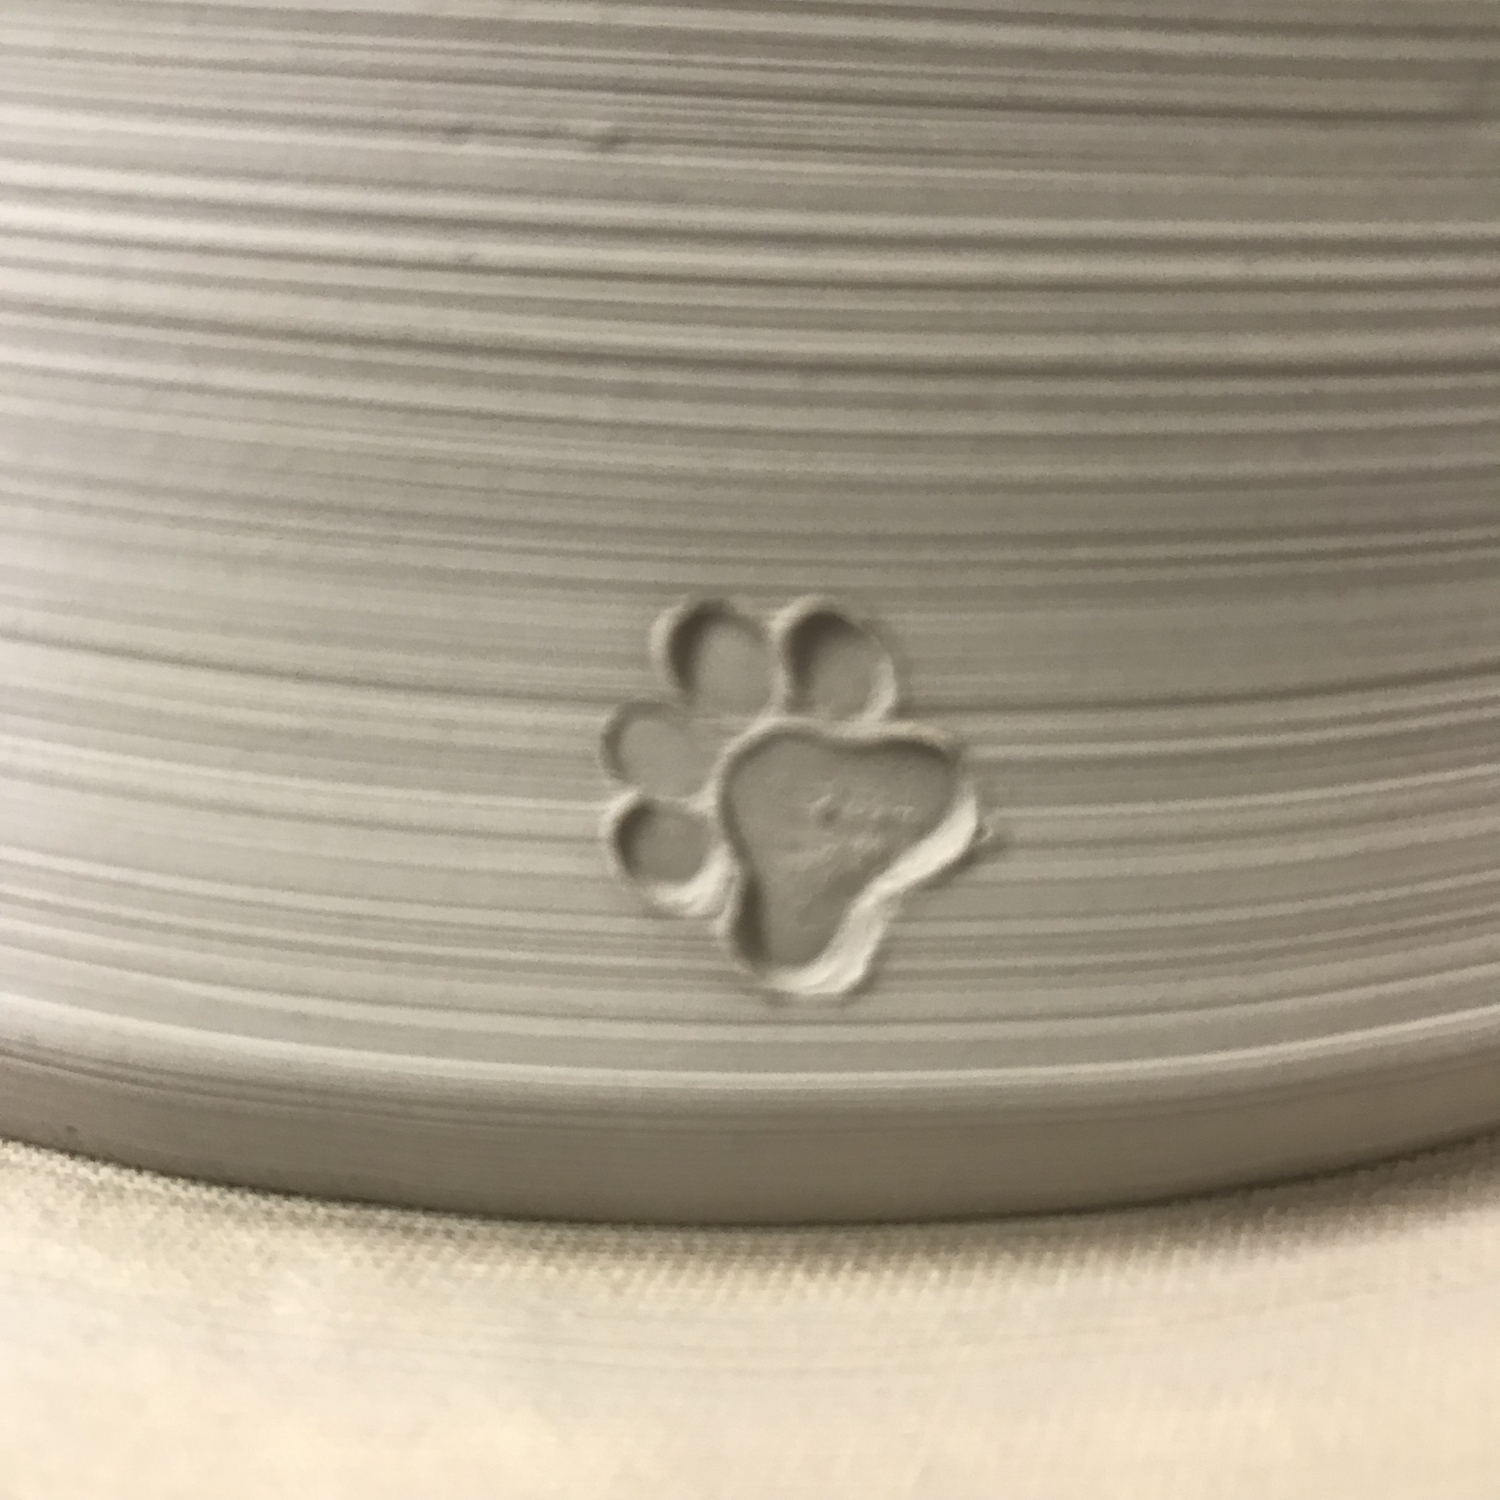 3 paw print stamped on leather hard pot.jpg